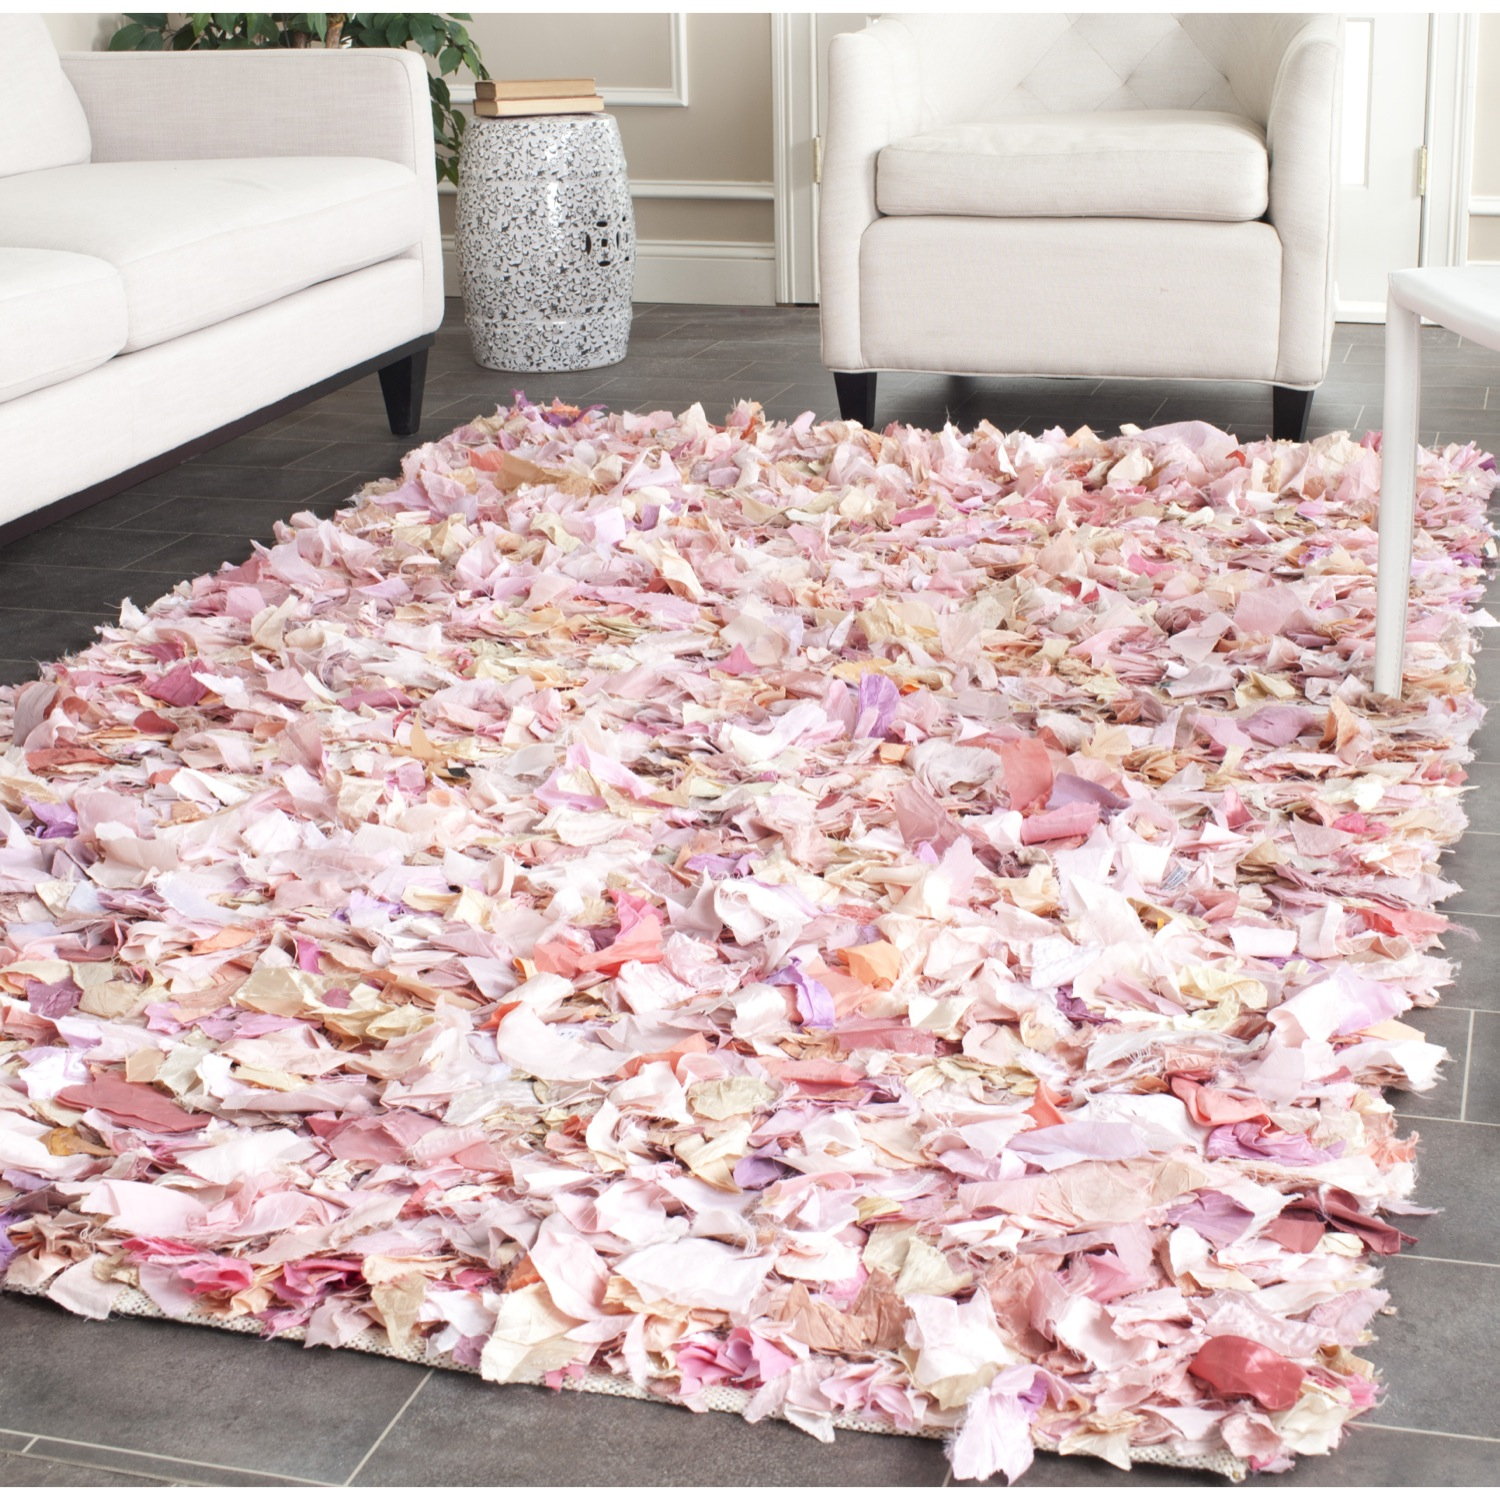 charming rectangle shag rugs in pink on grey ceramics floor plus white sofa for living room decor ideas